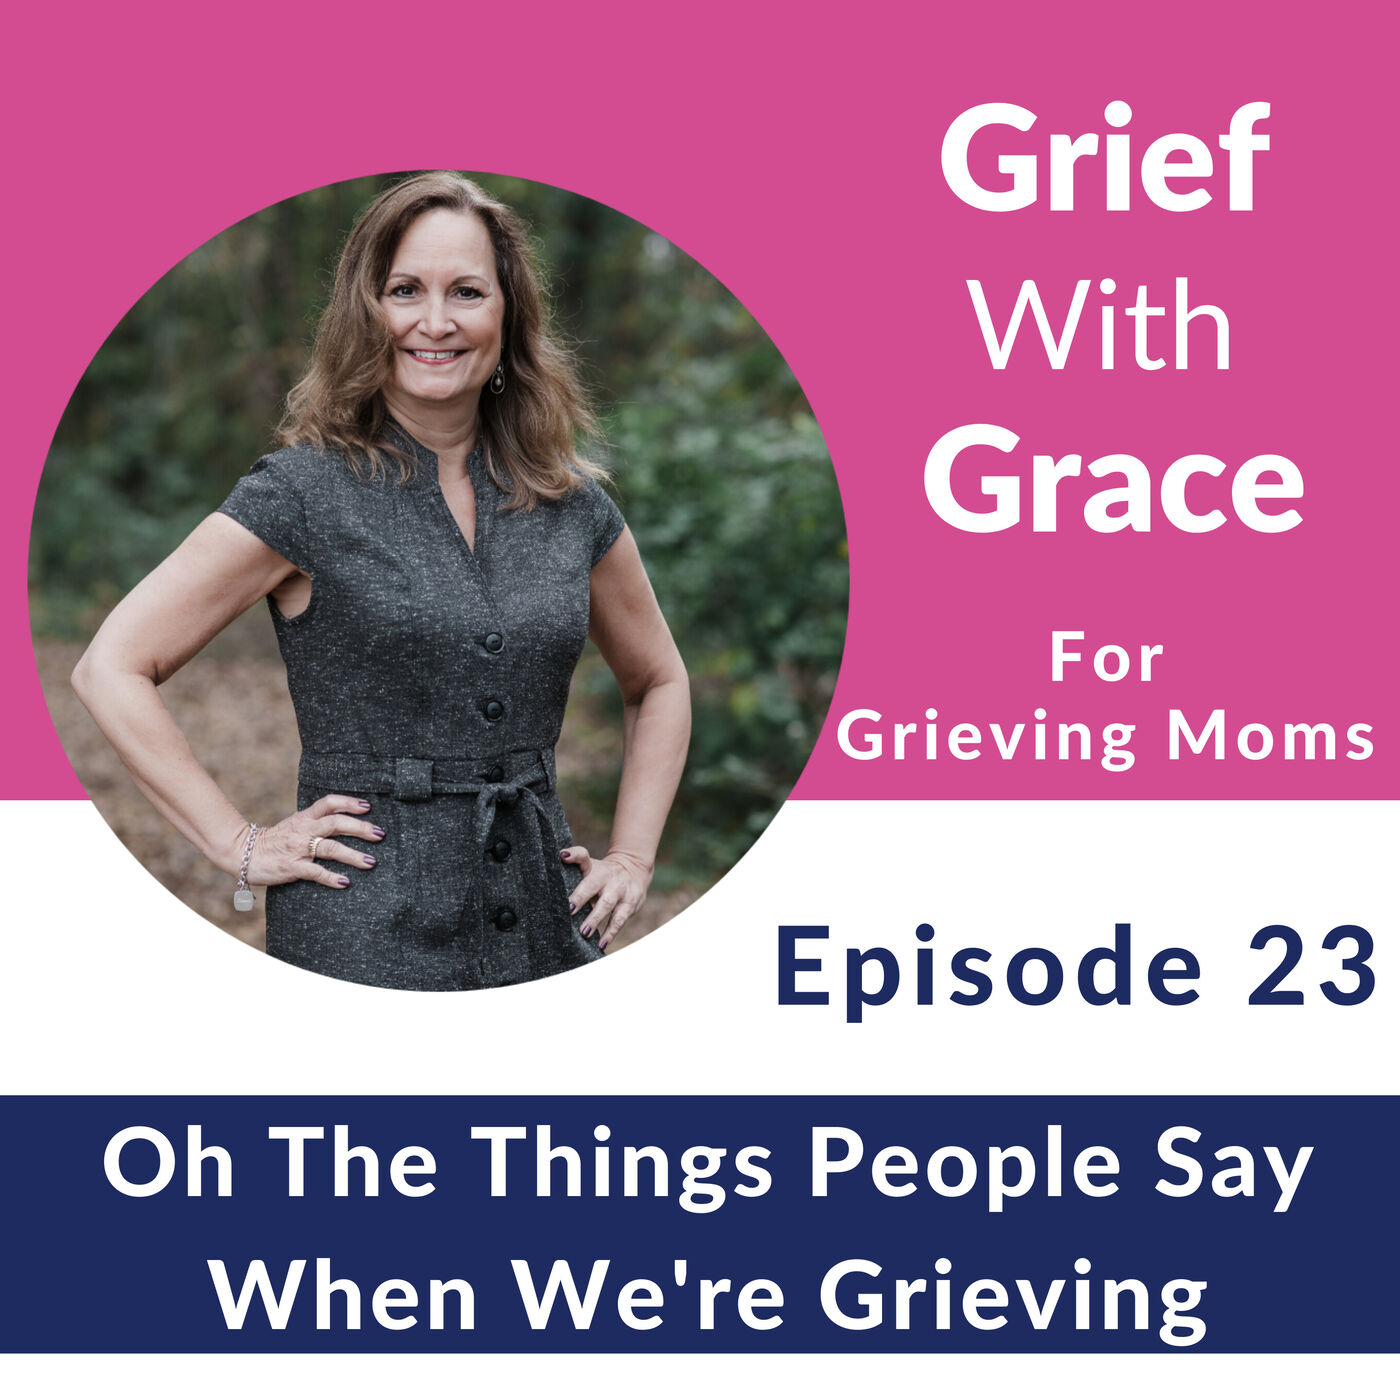 23. Oh The Things People Say When We're Grieving!